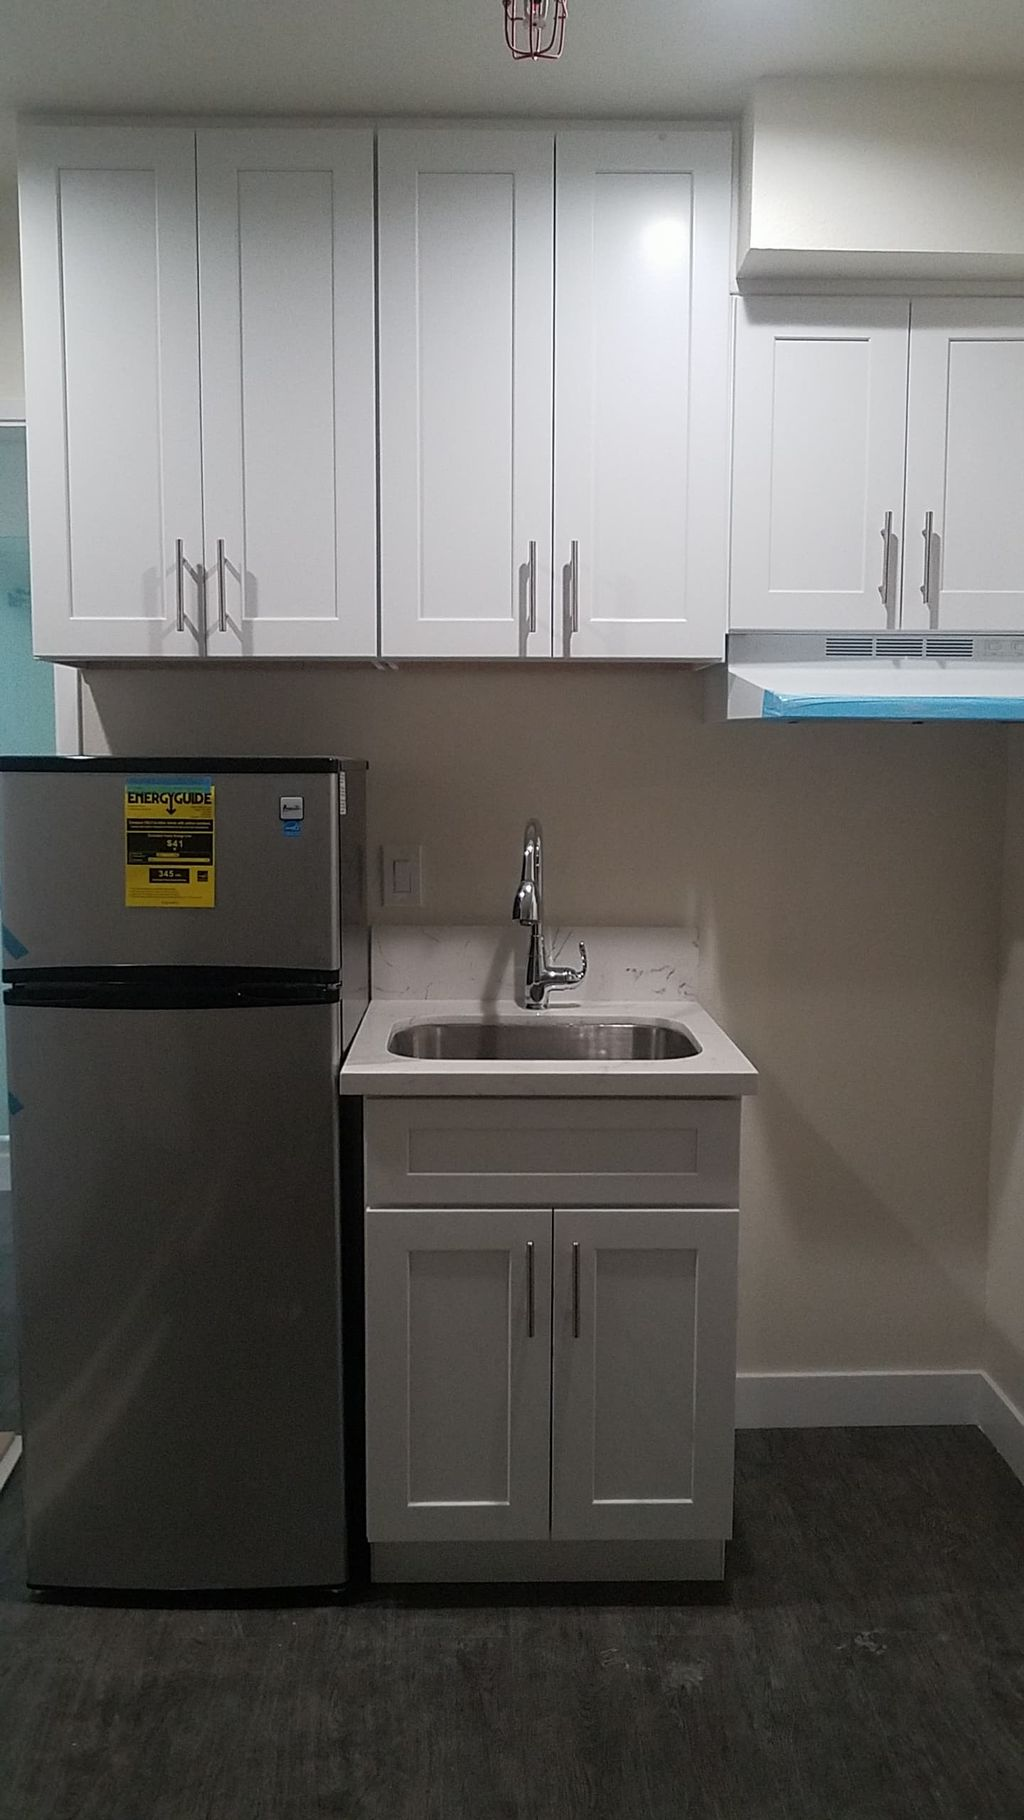 convert storage and laundry room to one bedroom apartment